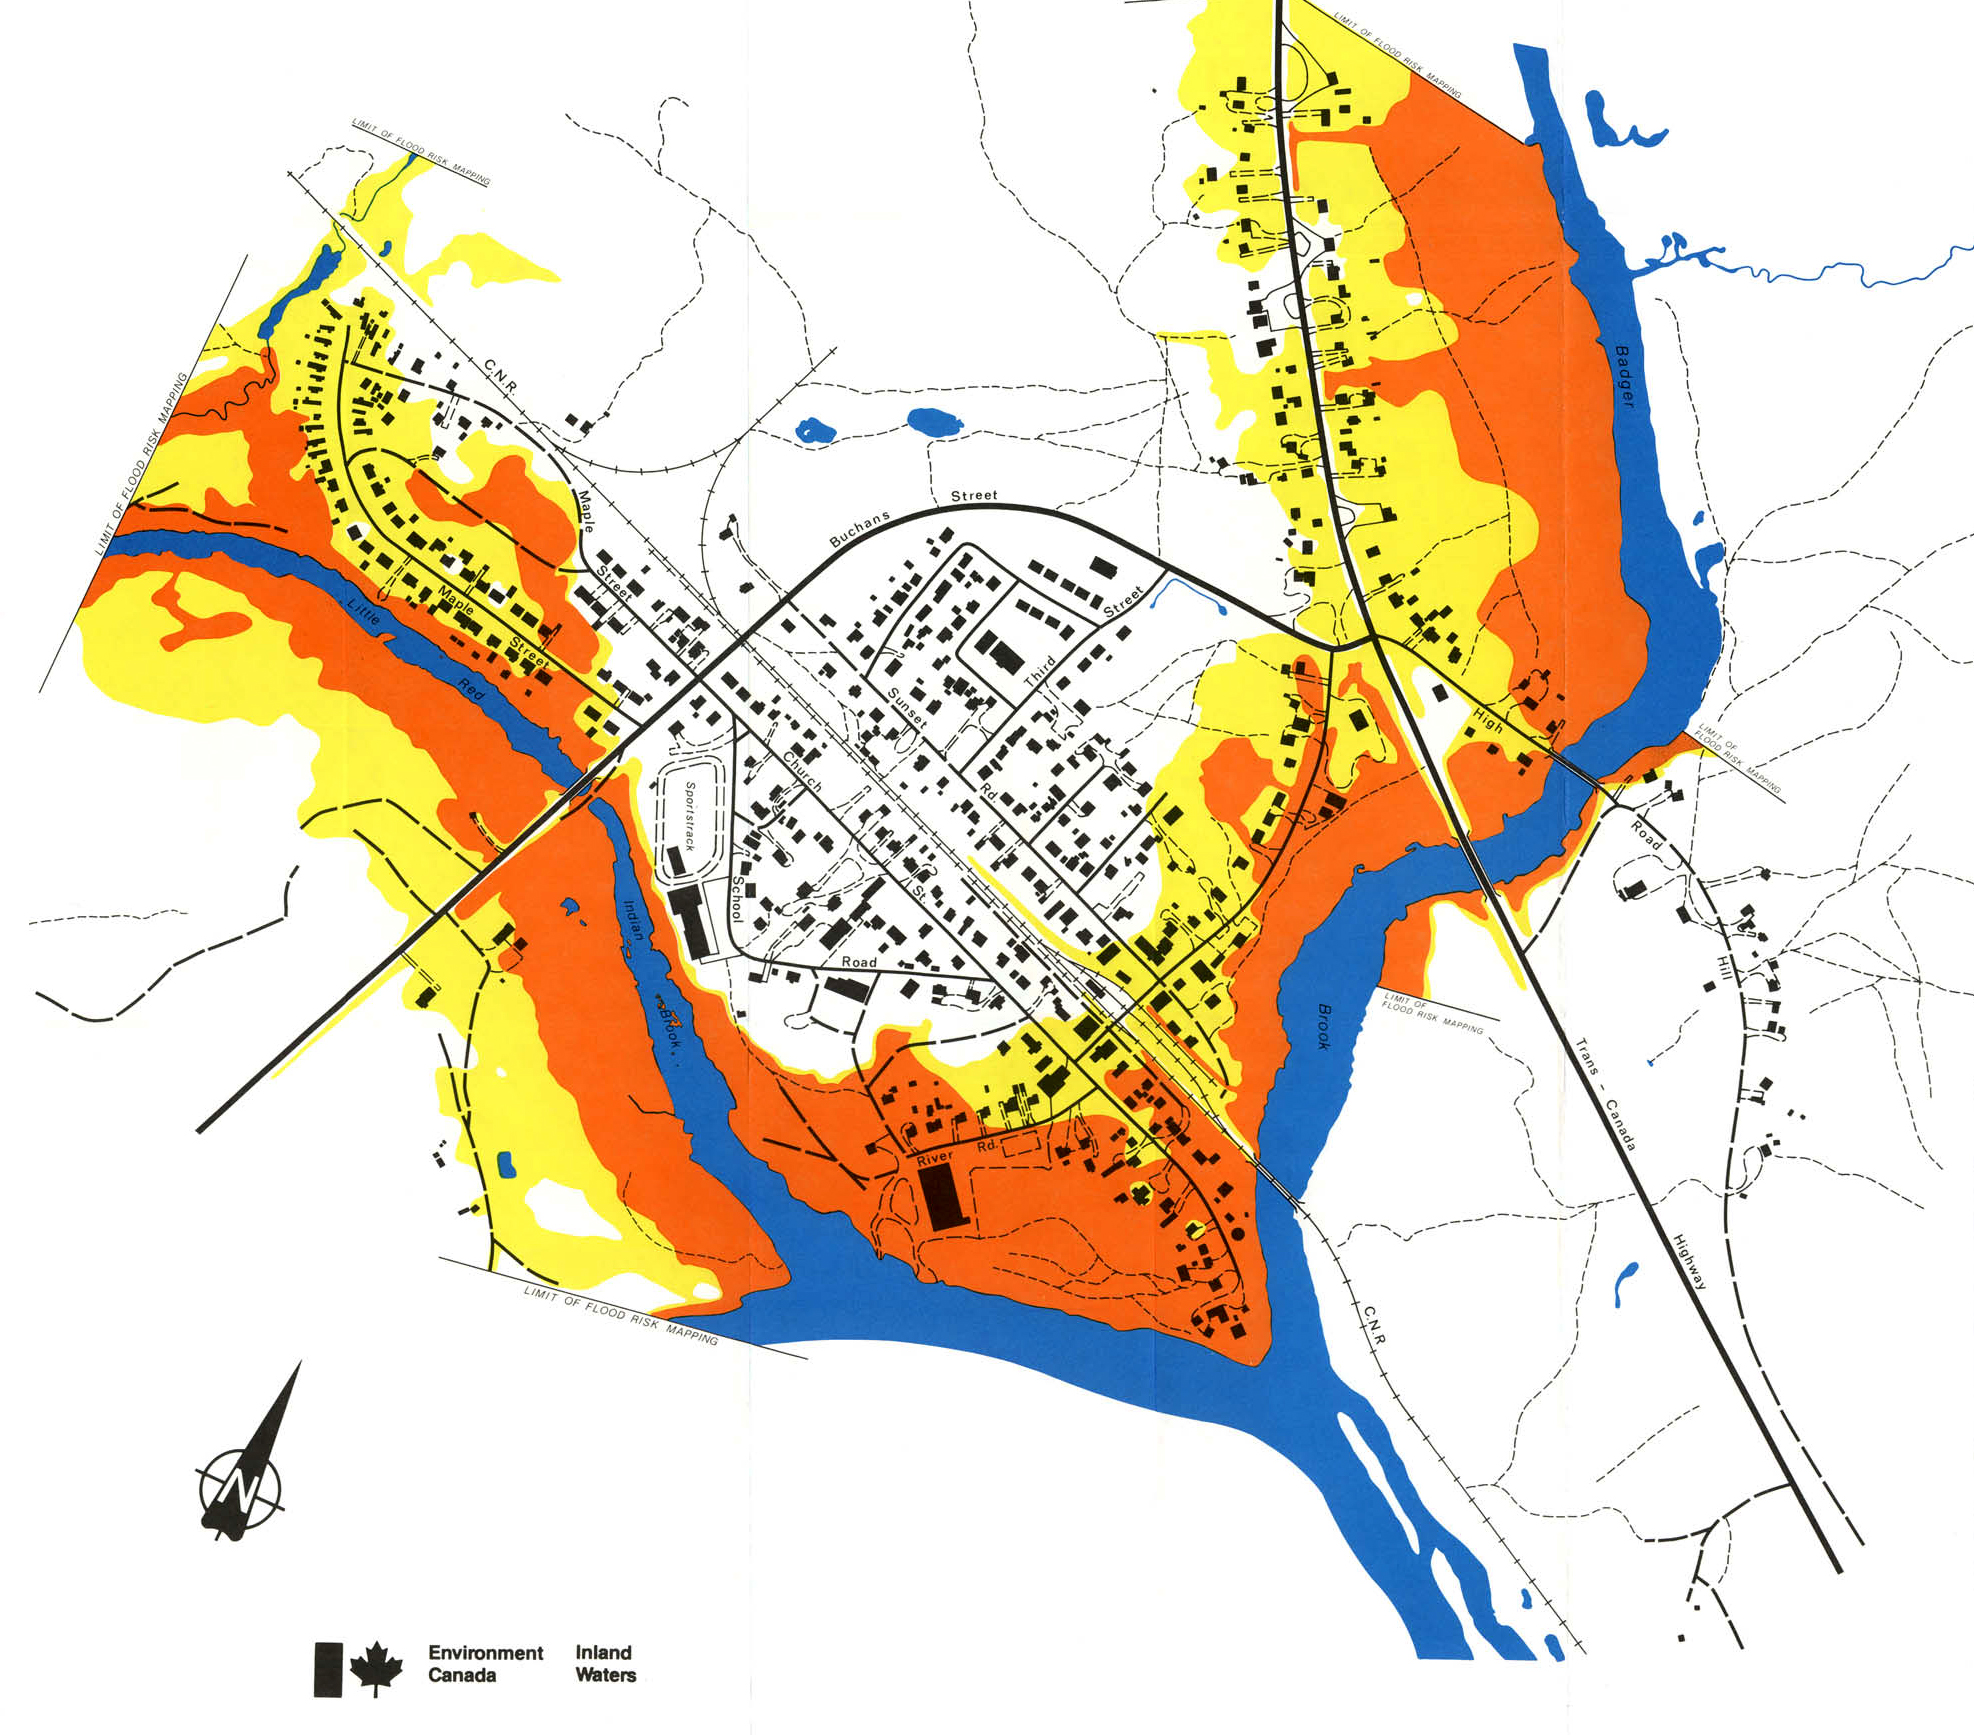 Space in Images 2006 05 Flood risk map of Badger